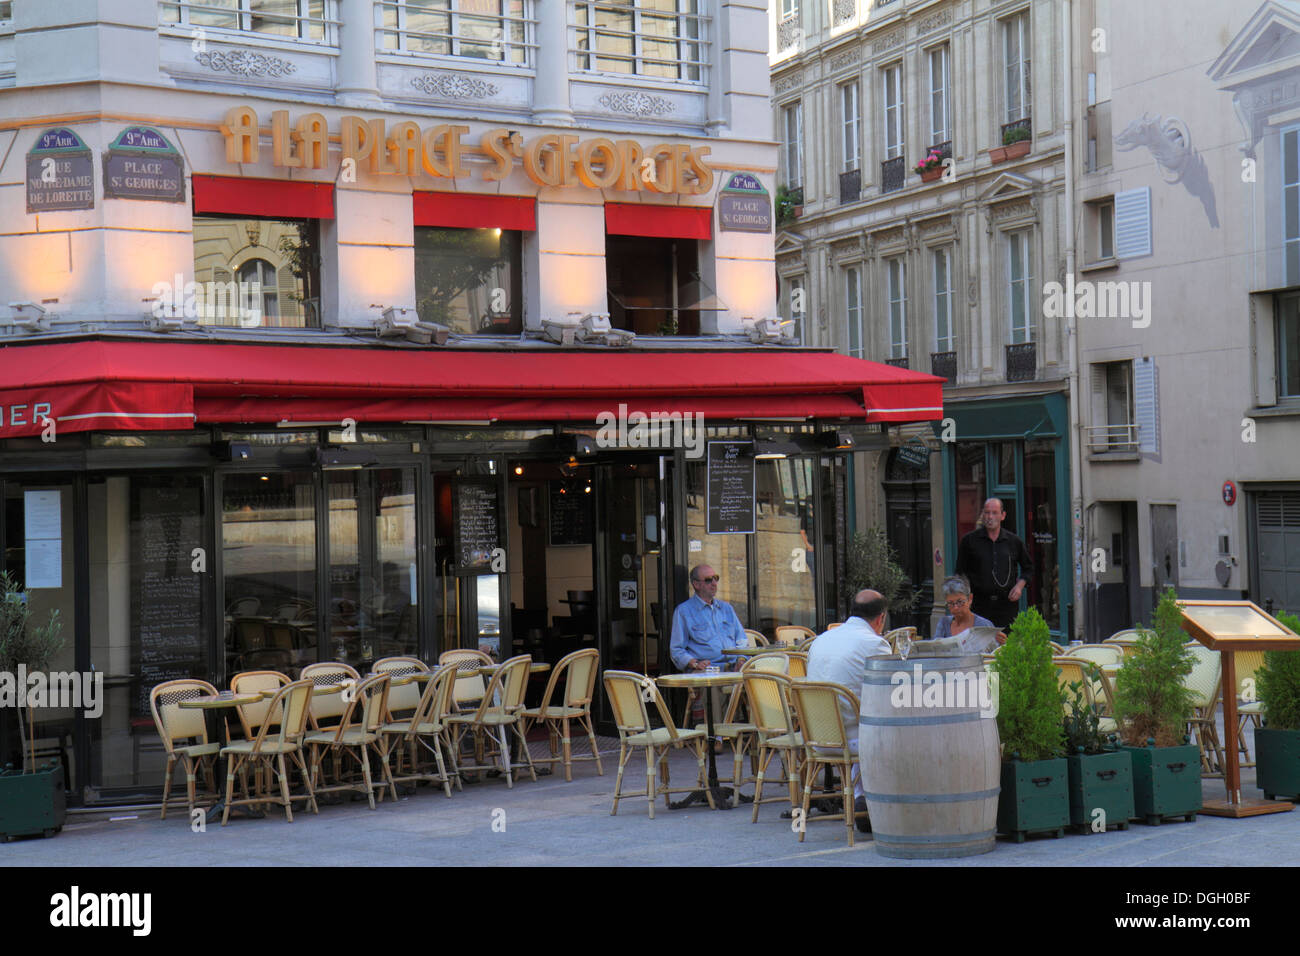 Paris france europe french place saint st georges 9th for Restaurant cuisine francaise paris